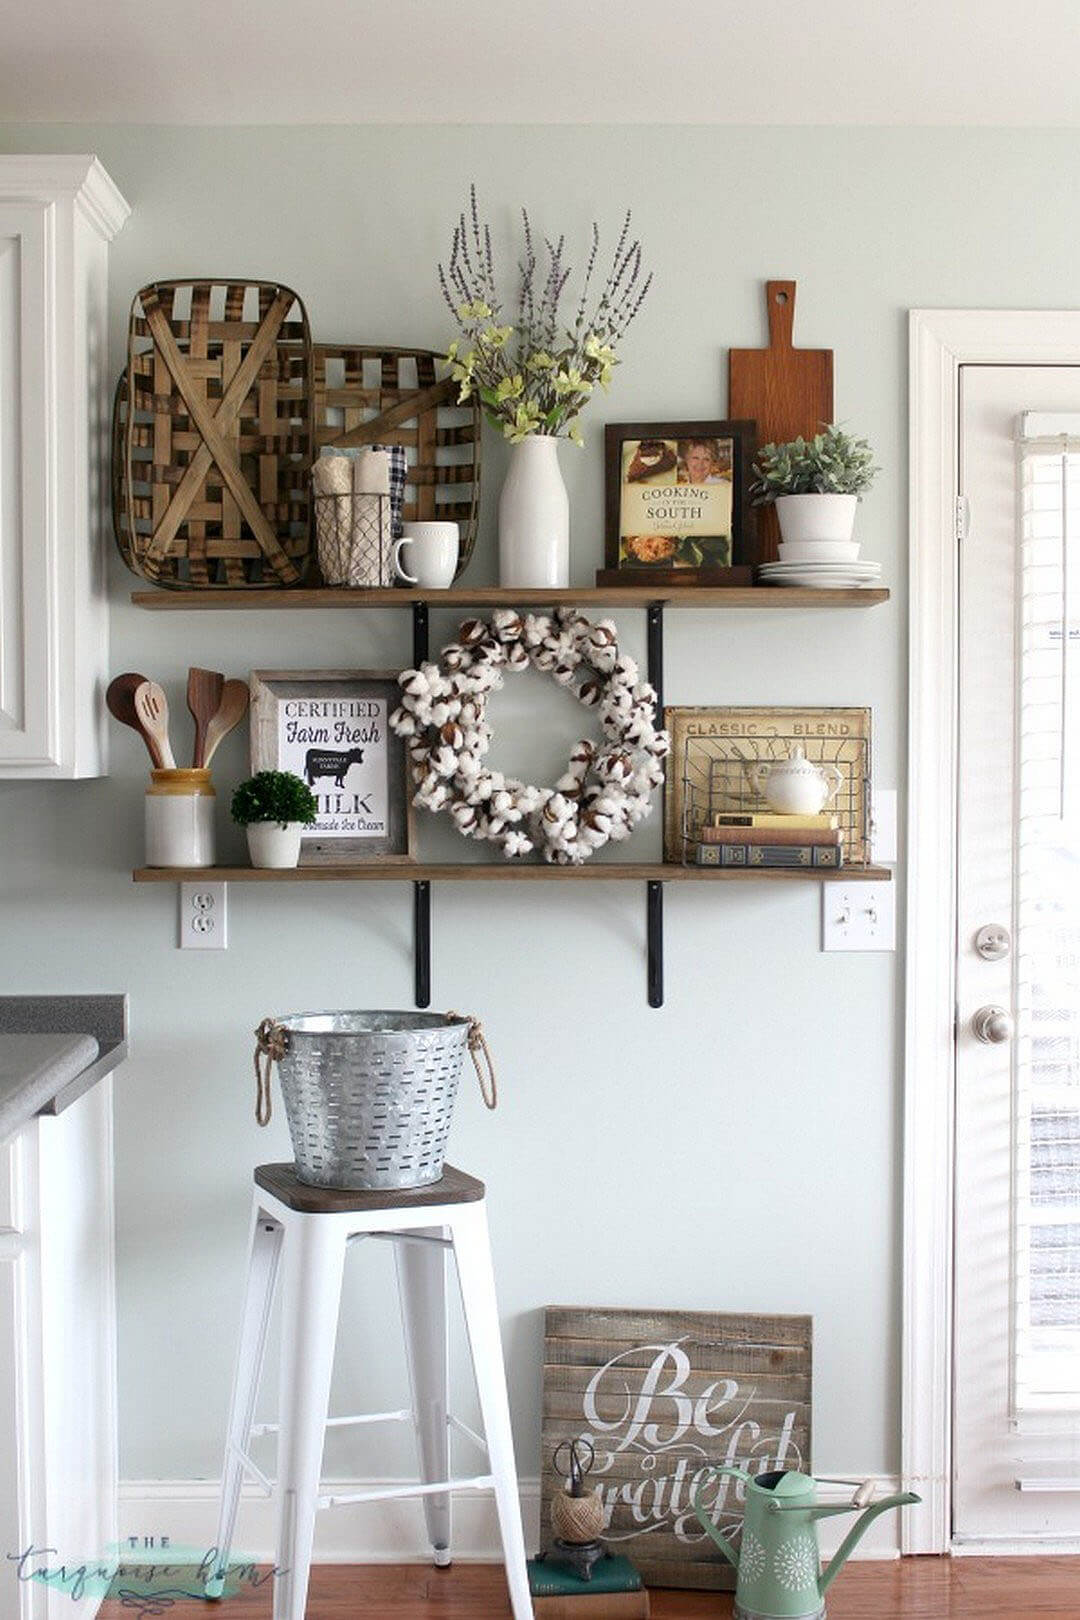 kitchen-wall-decor-ideas Again, a shelve